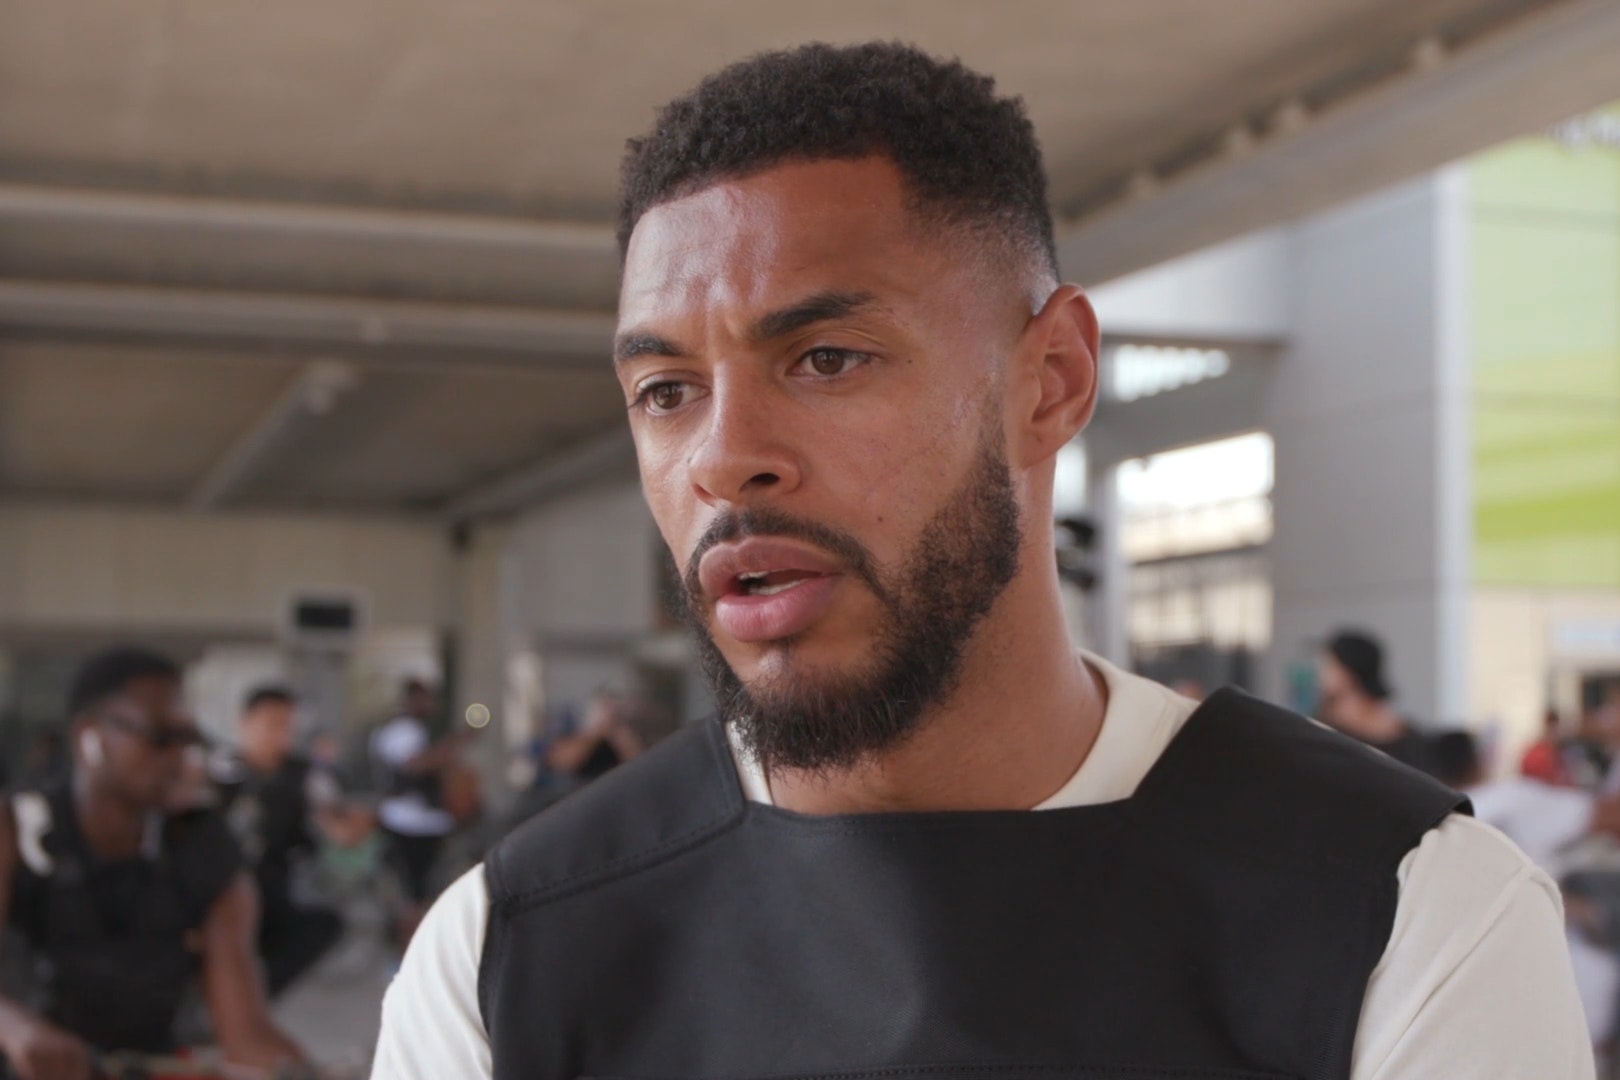 Watford star joins young bikers for anti-knife crime protest